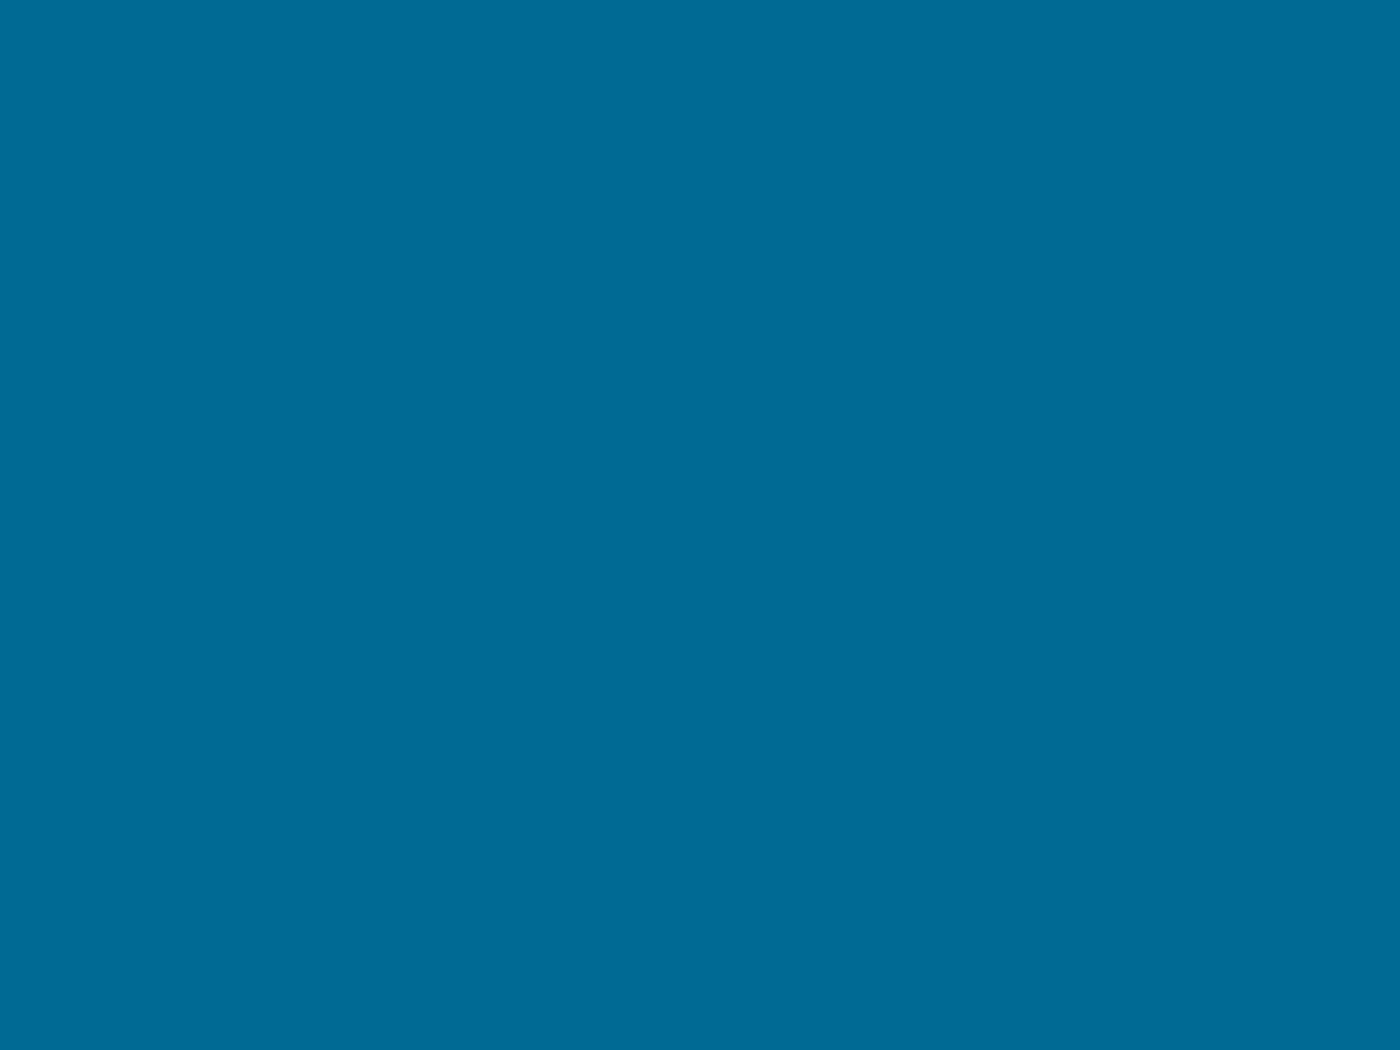 1400x1050 Sea Blue Solid Color Background